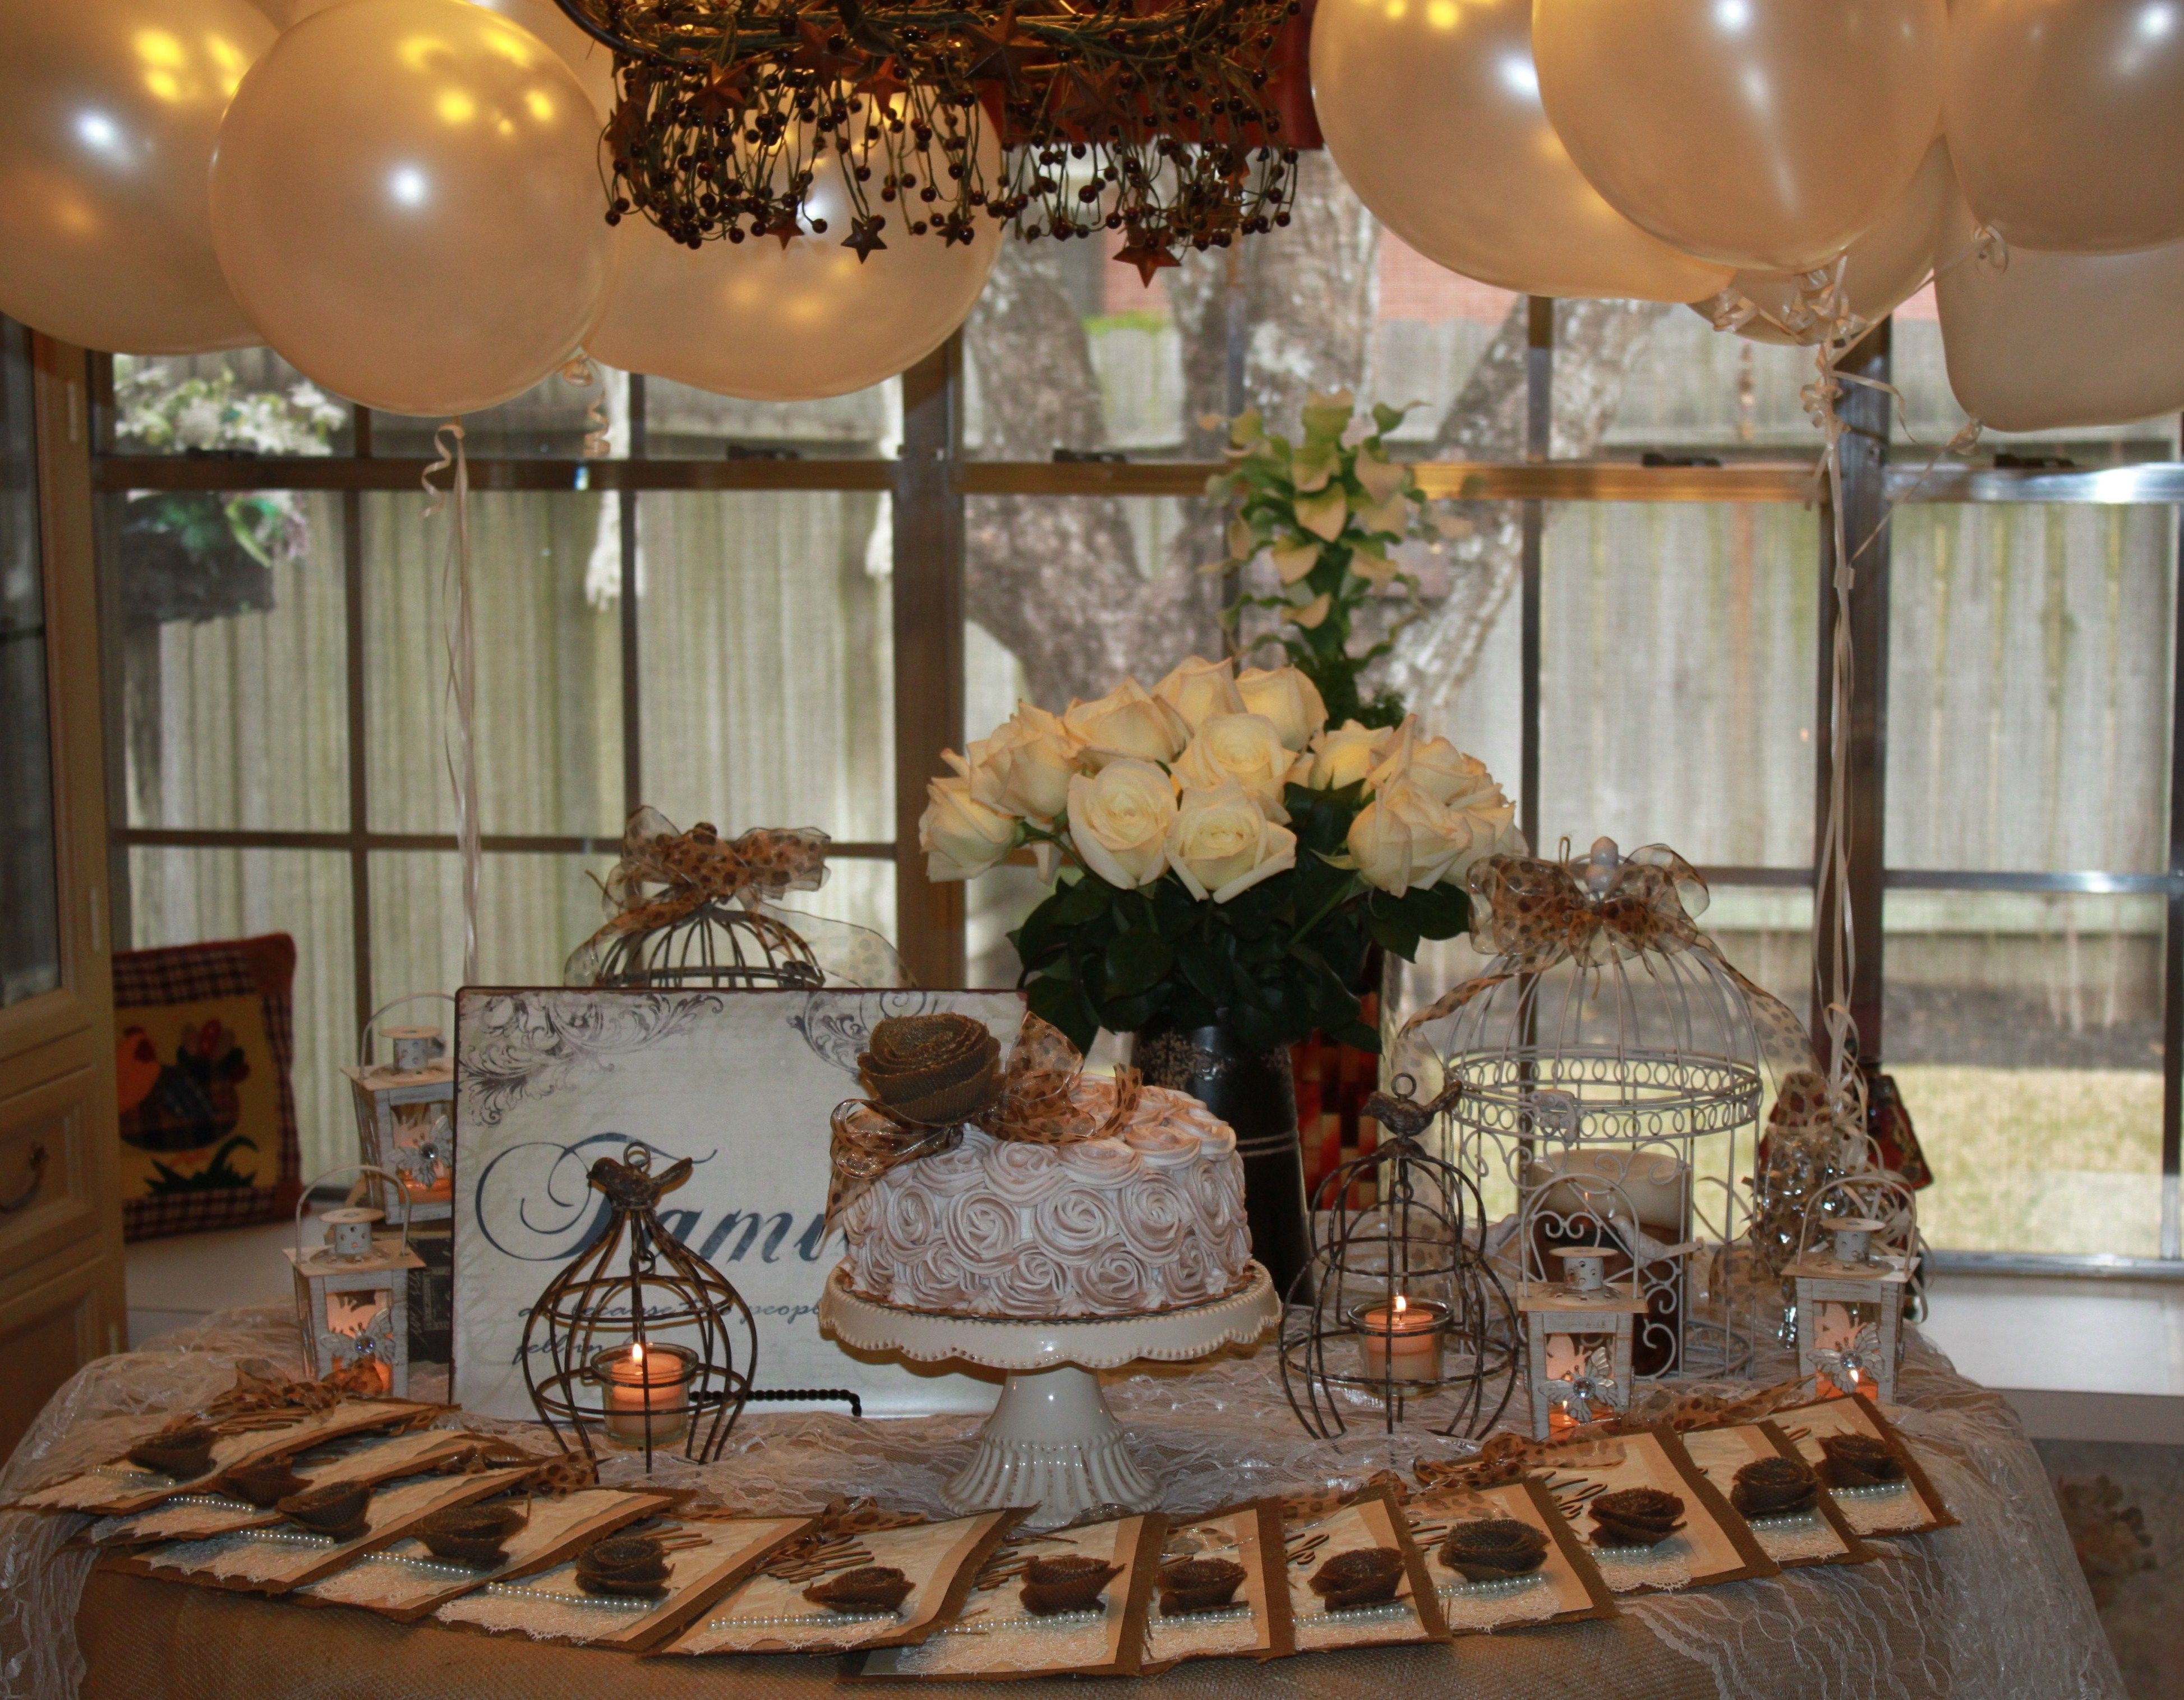 75th Birthday Party Decorations  A vintage garden themed party for mom s 75th birthday